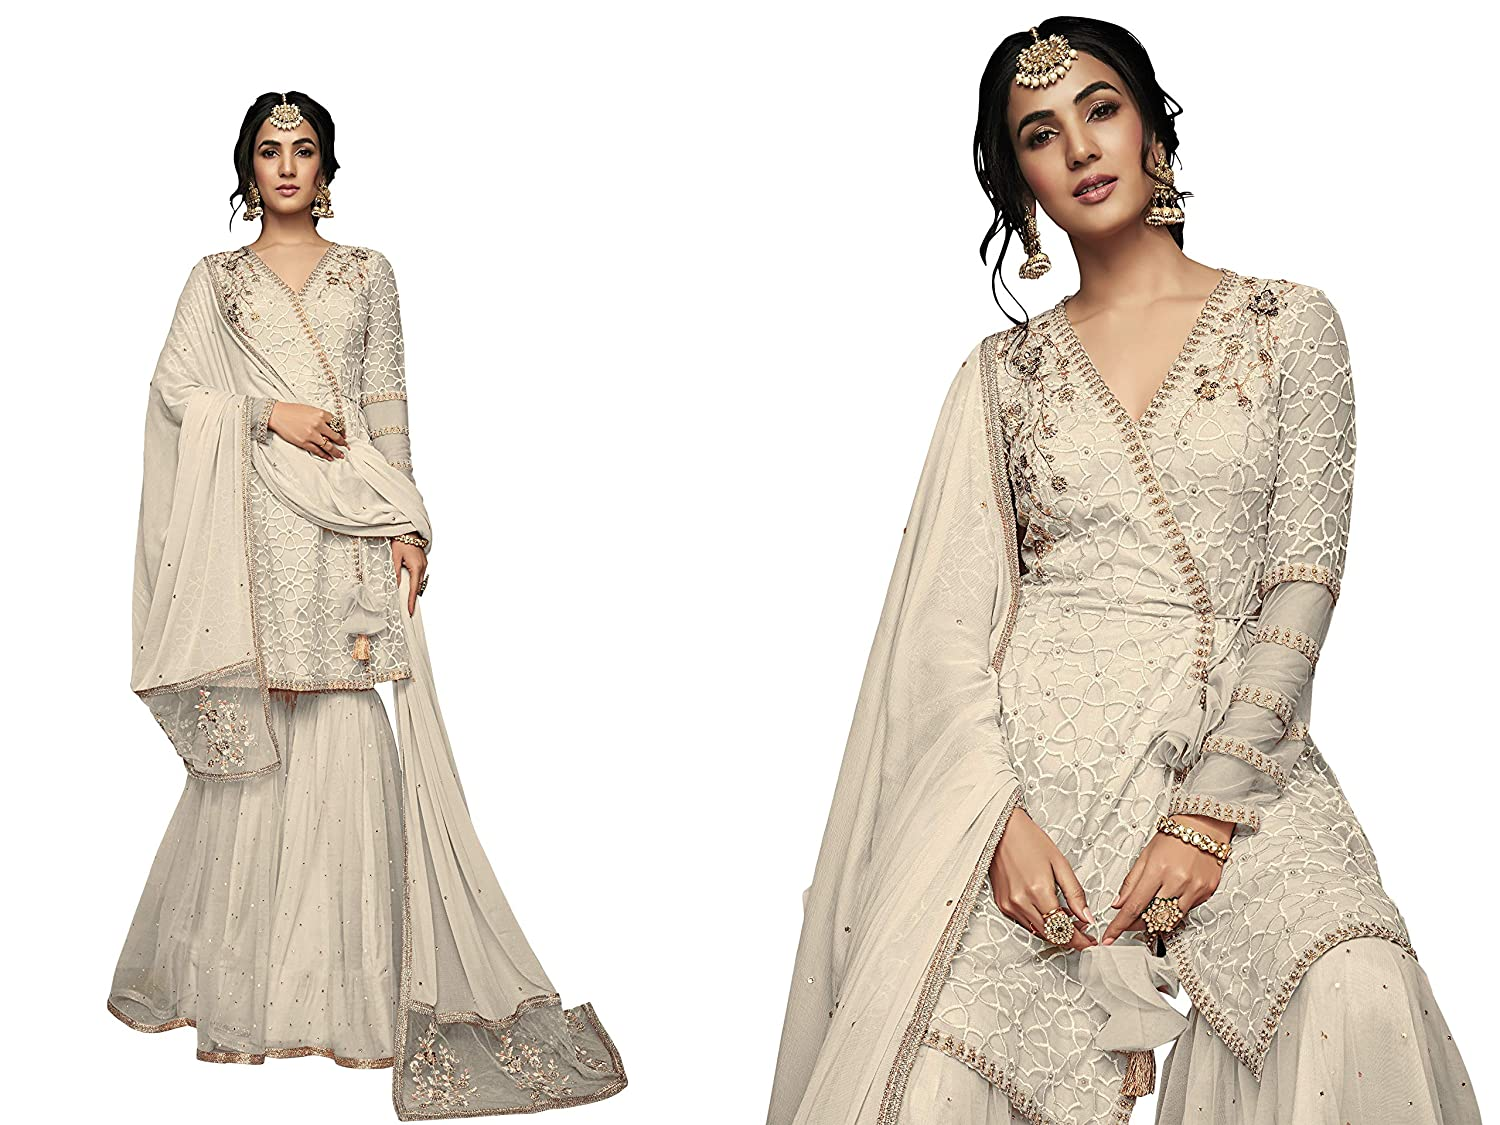 Buy Designer Suit Women S Clothing Dress Material For Women Wear Salwar Suit With Mirror Work Fz 7405 Semi Stitched At Amazon In,Popular Fashion Designer Brands